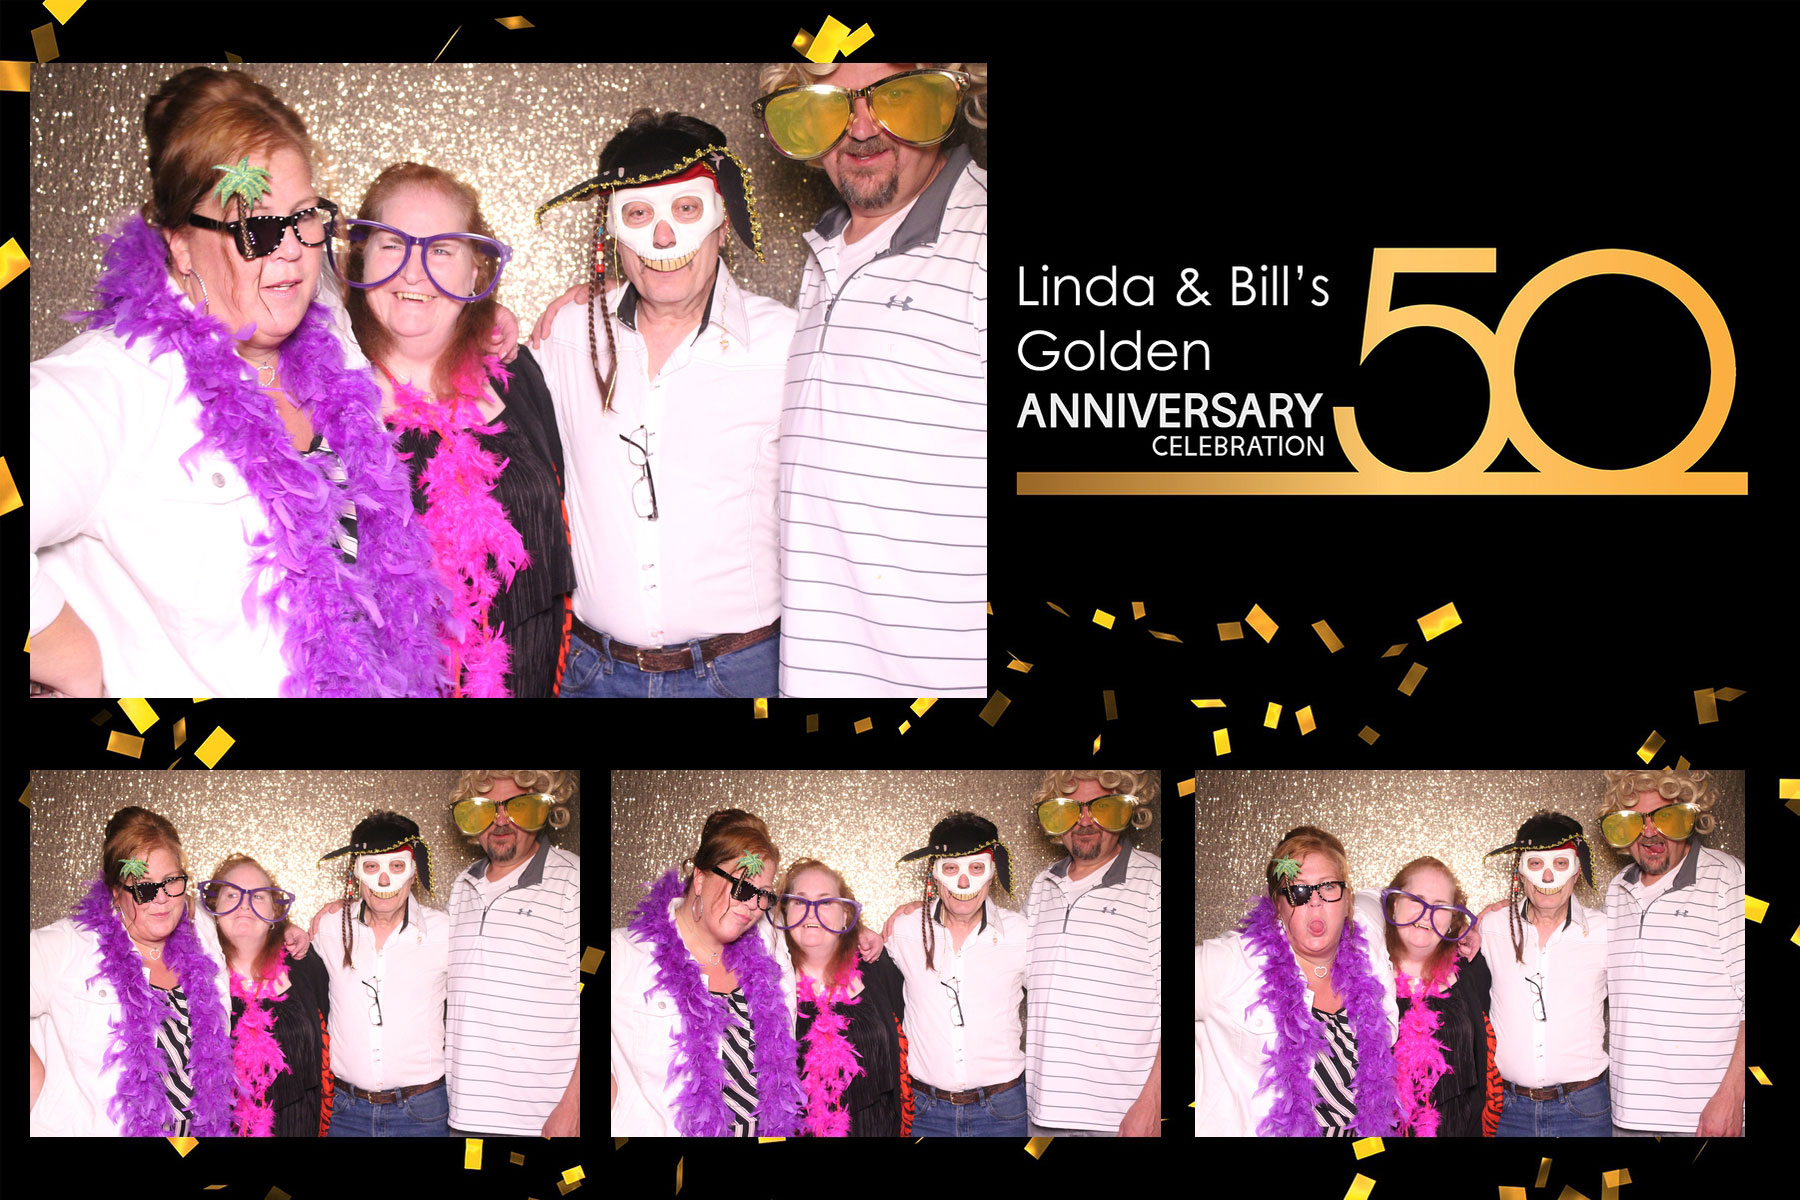 marriage anniversary celebration photo booth